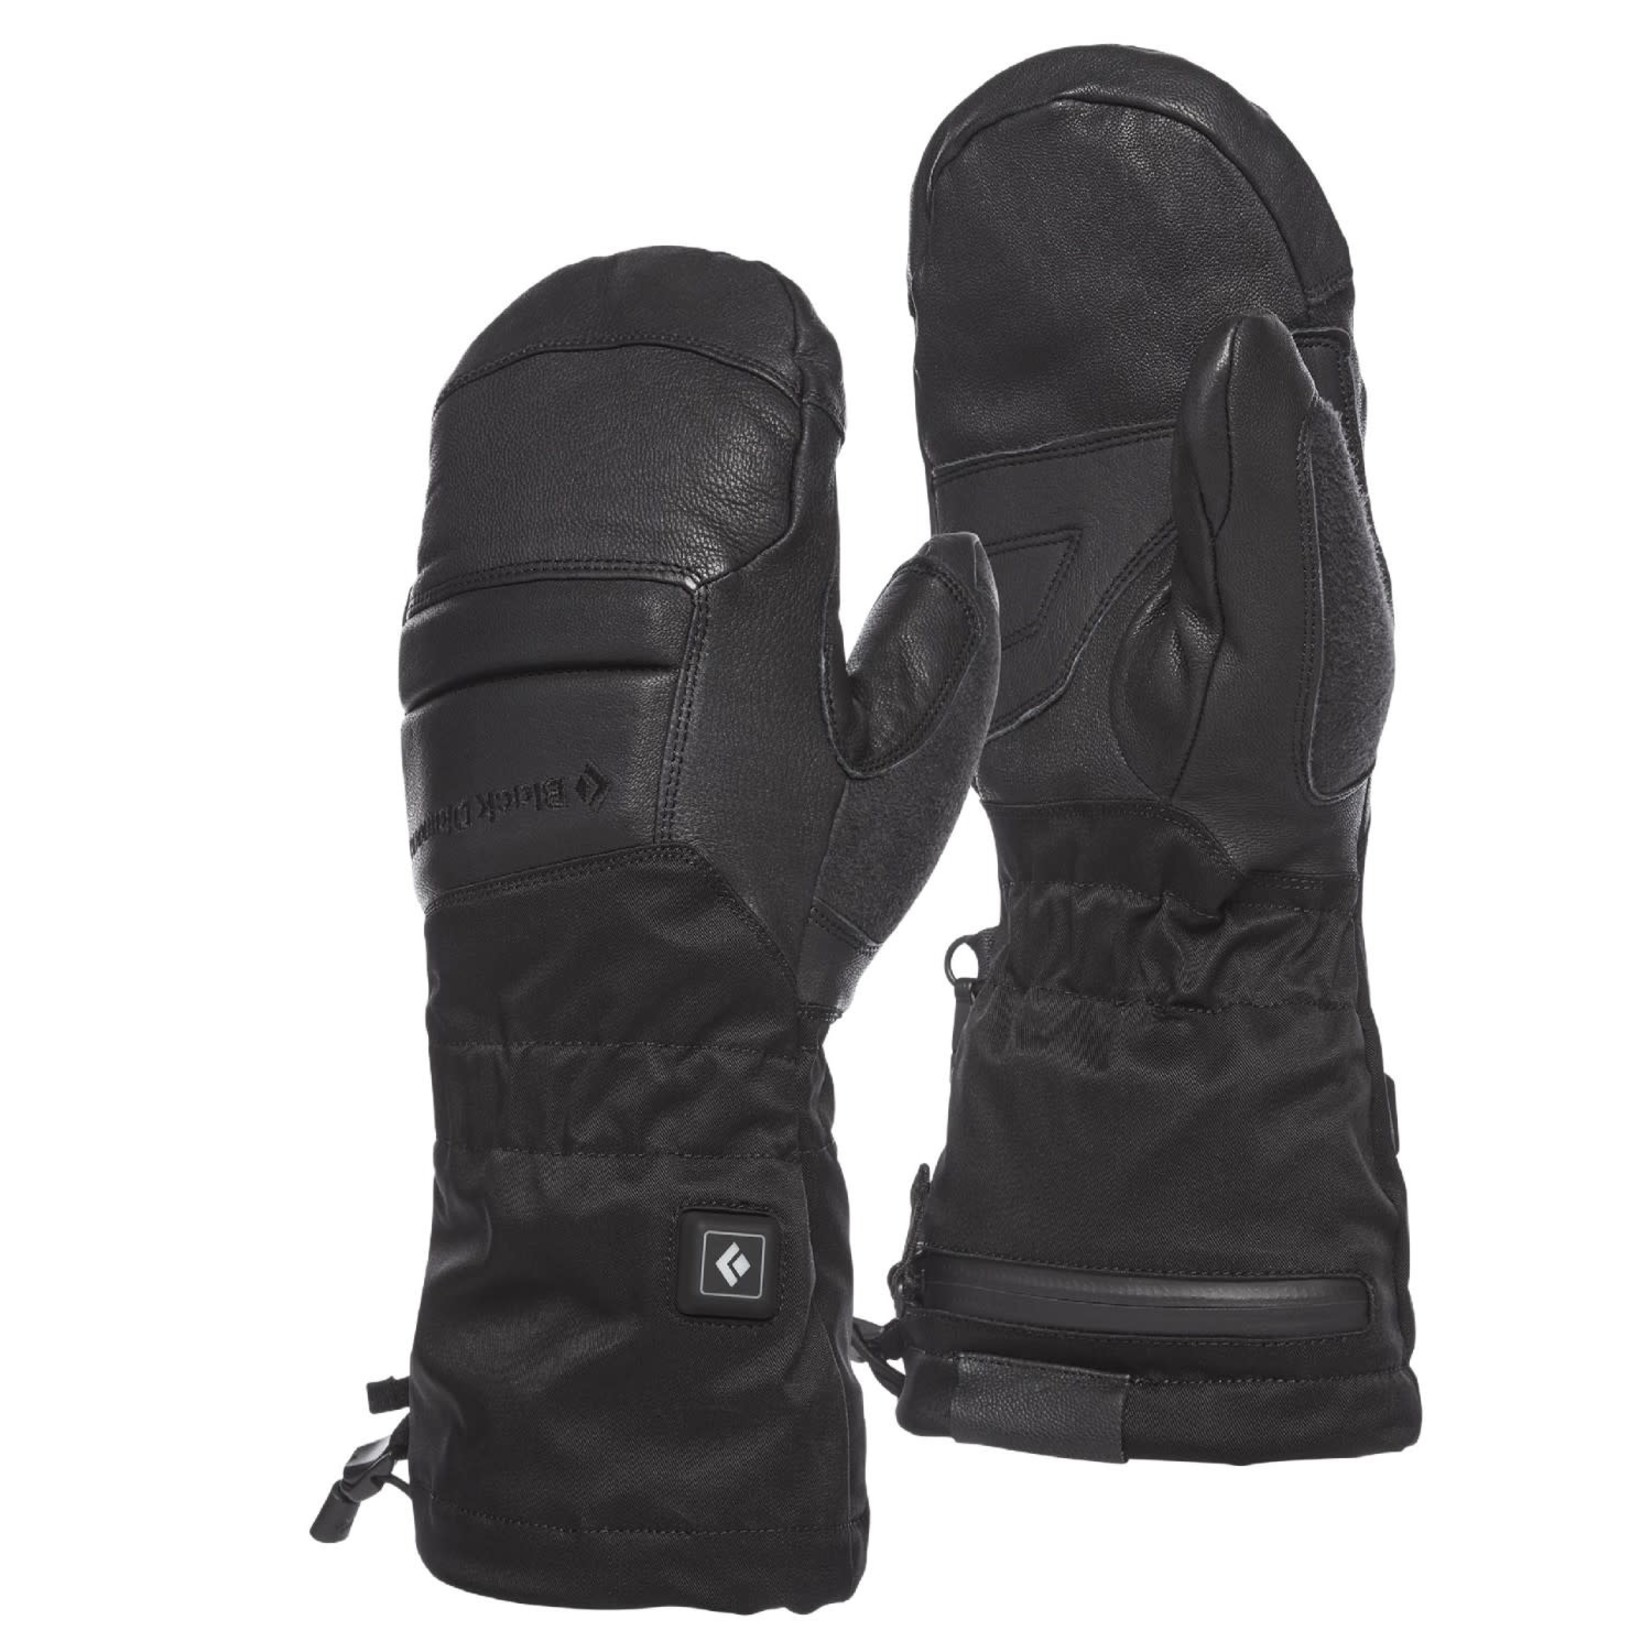 Black Diamond Black Diamond Solano Heated Mitts - Unisex